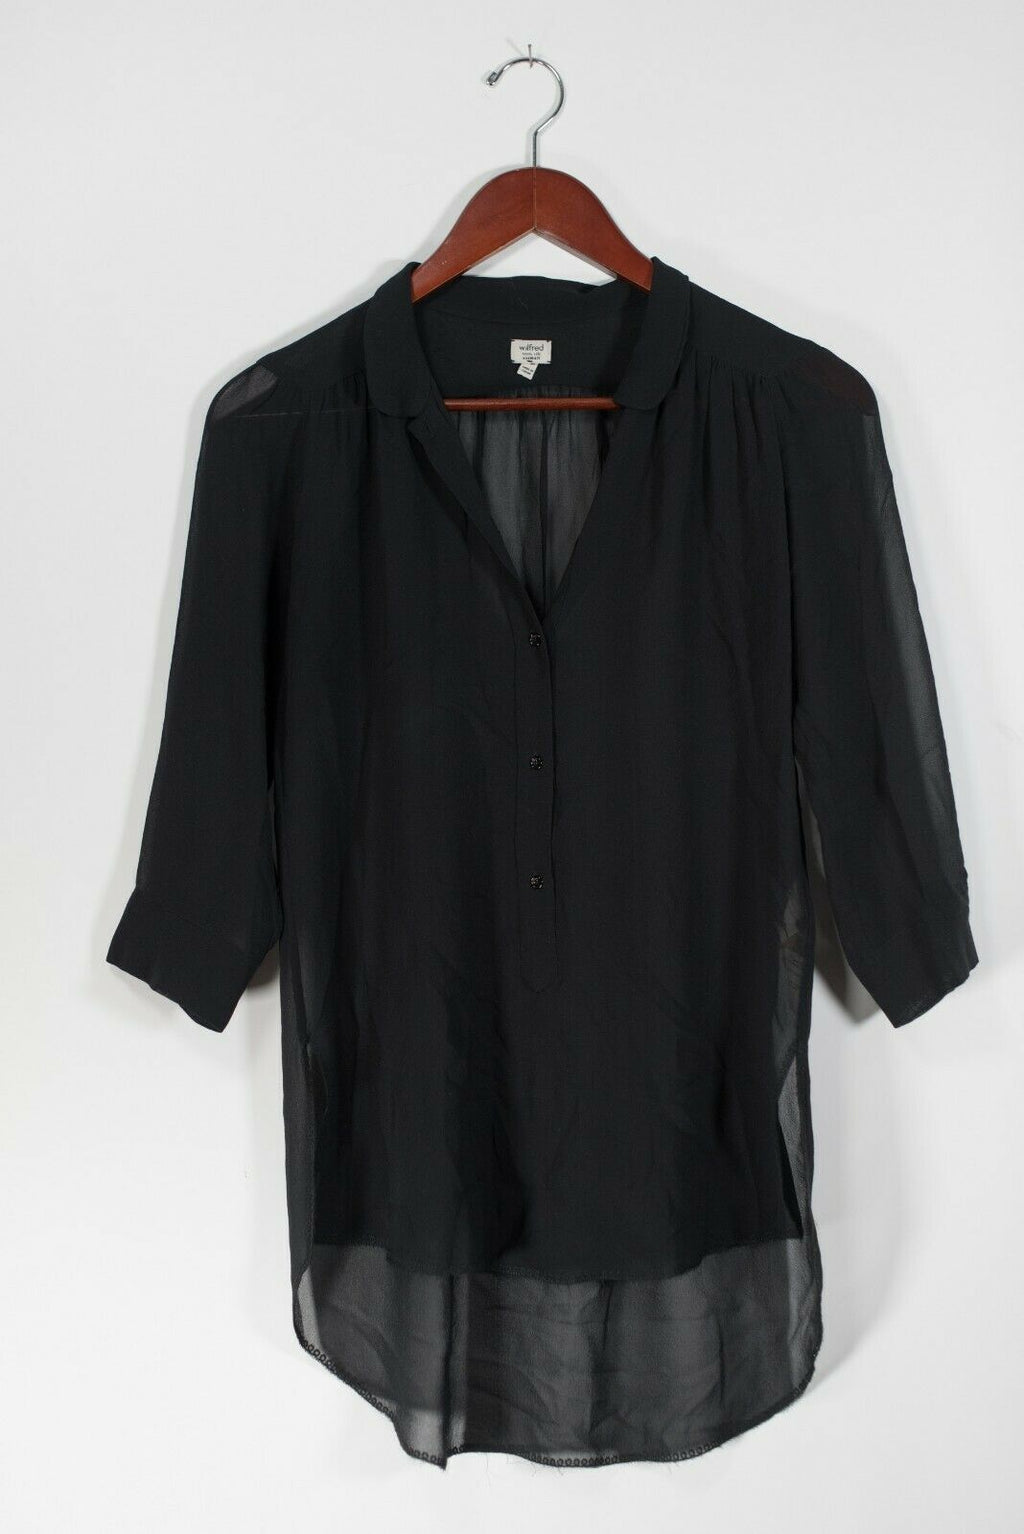 Artizia Wilfred Womens Size XXS Black Guilia Blouse Sheer V-Neck Silk Tunic Top